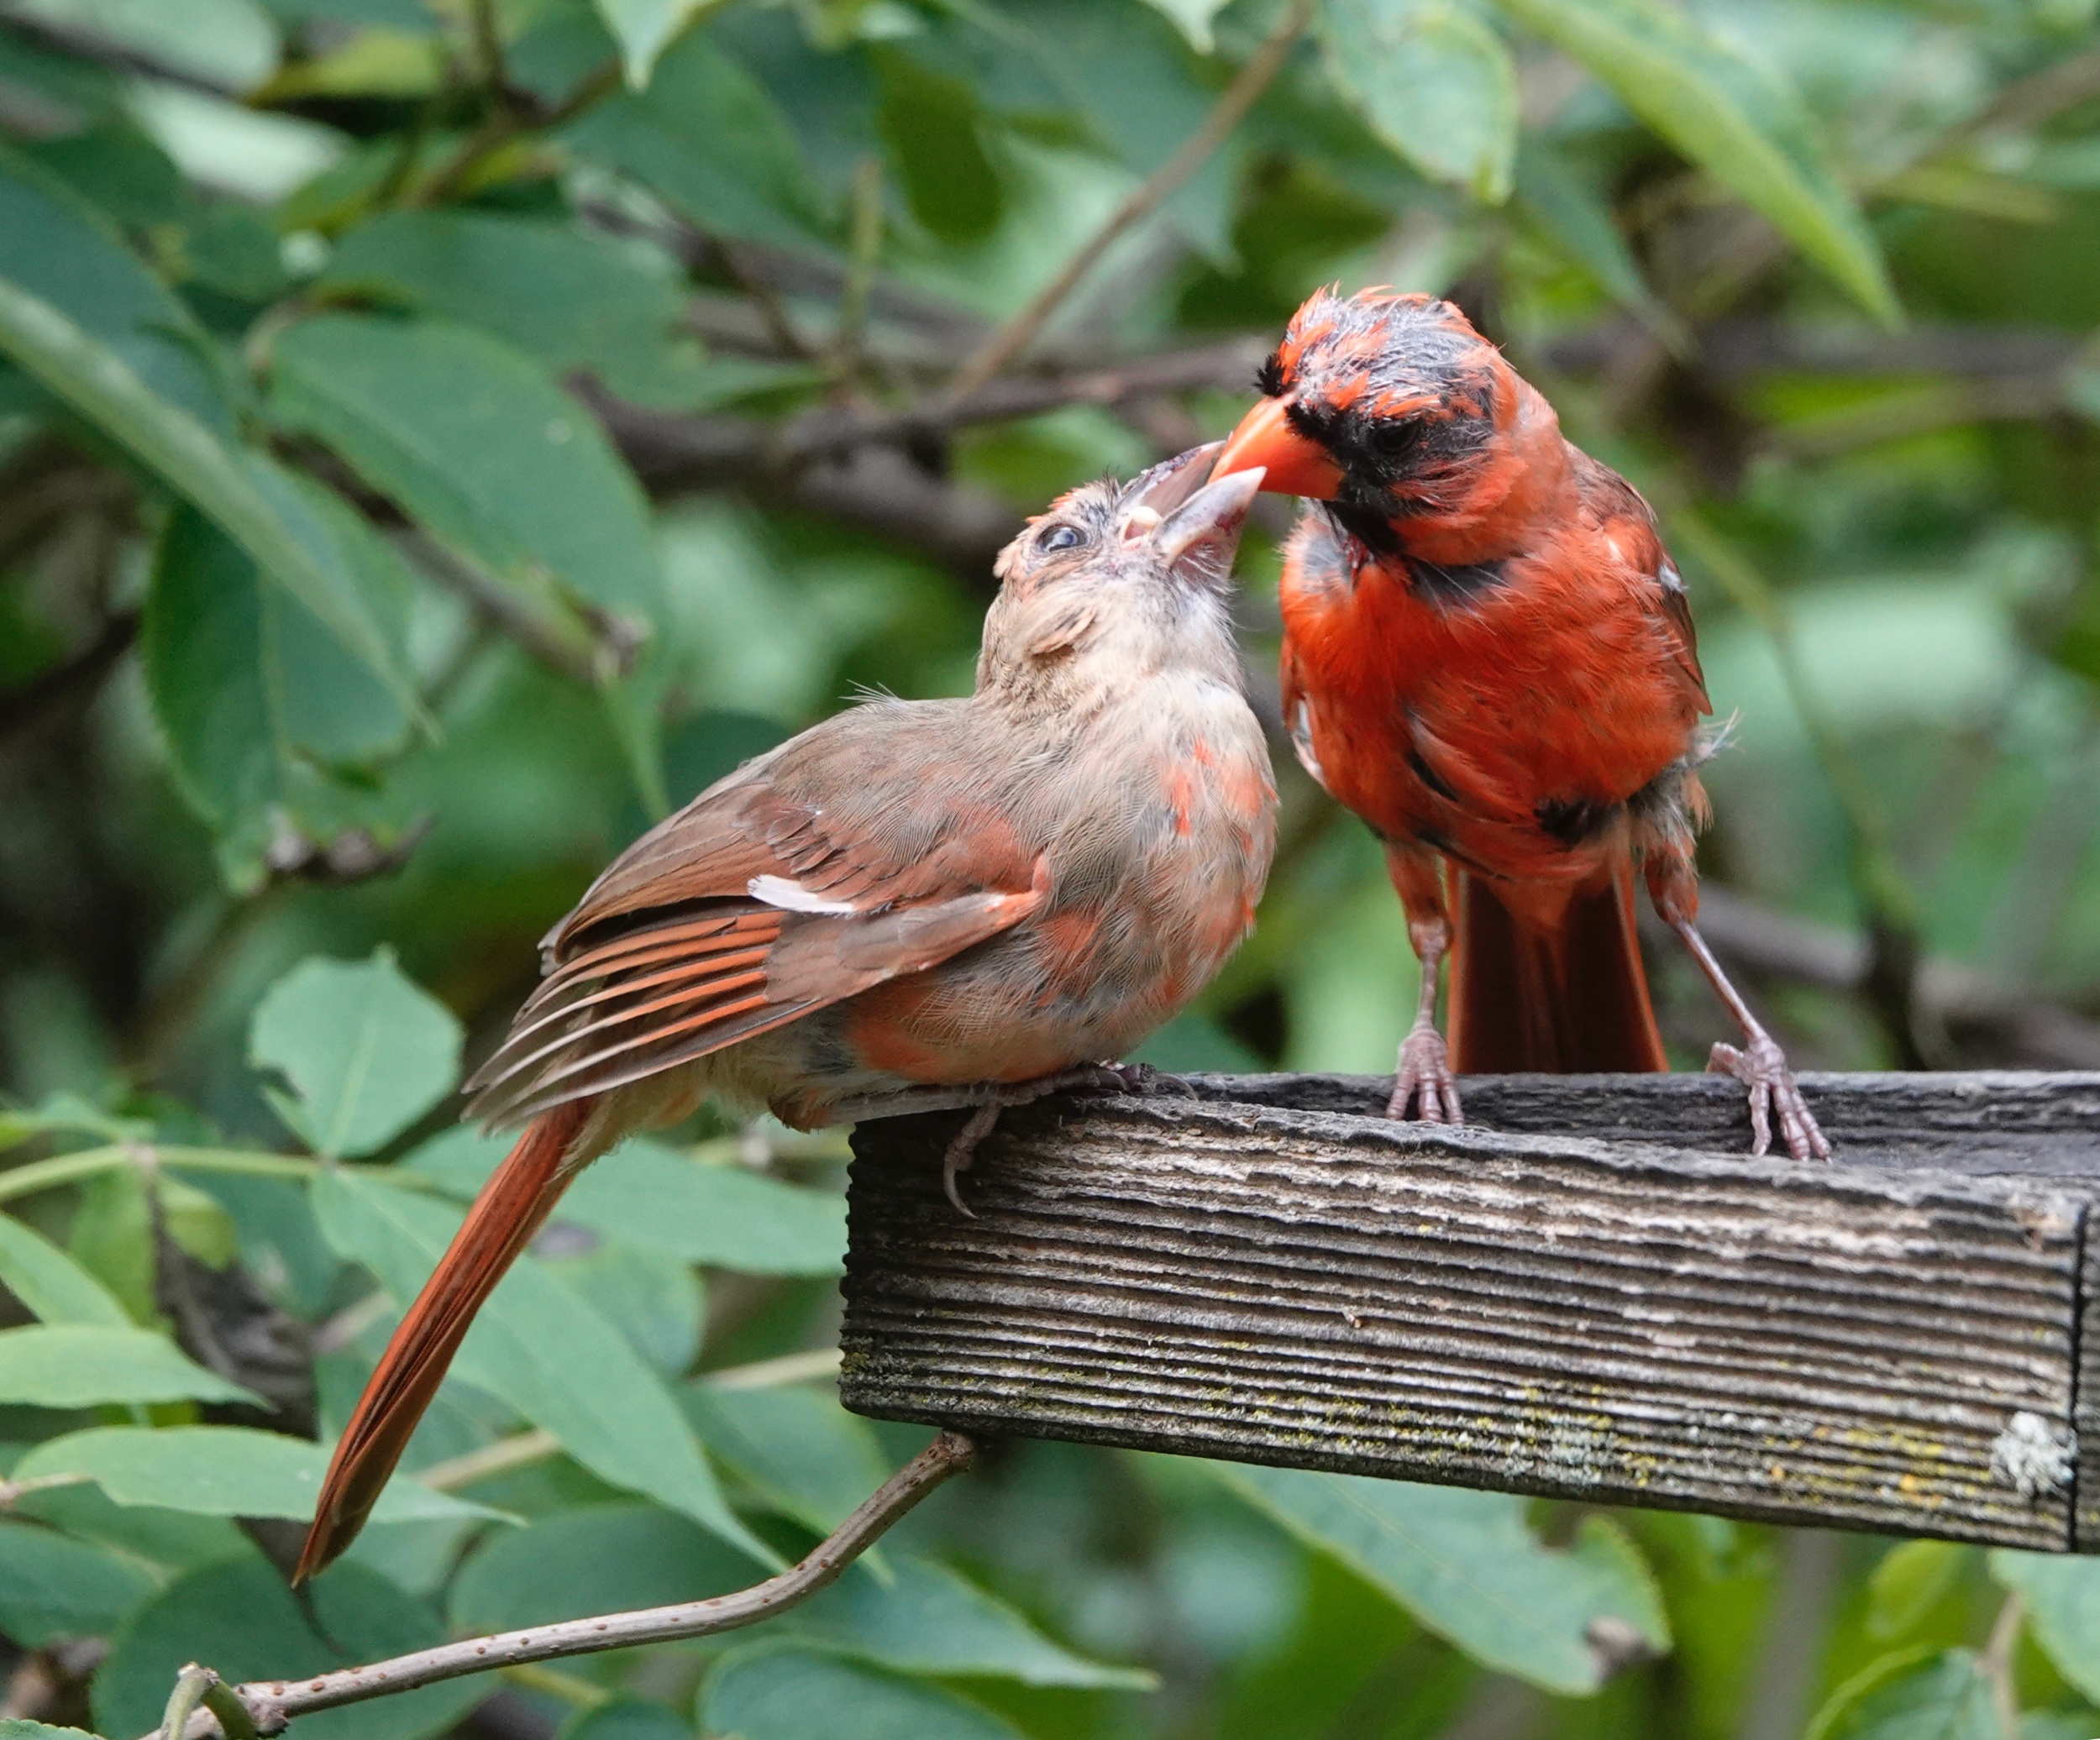 AL BATT/BLUFF COUNTRY READER An adult northern cardinal has a red-orange bill. A juvenile has a gray to black bill.